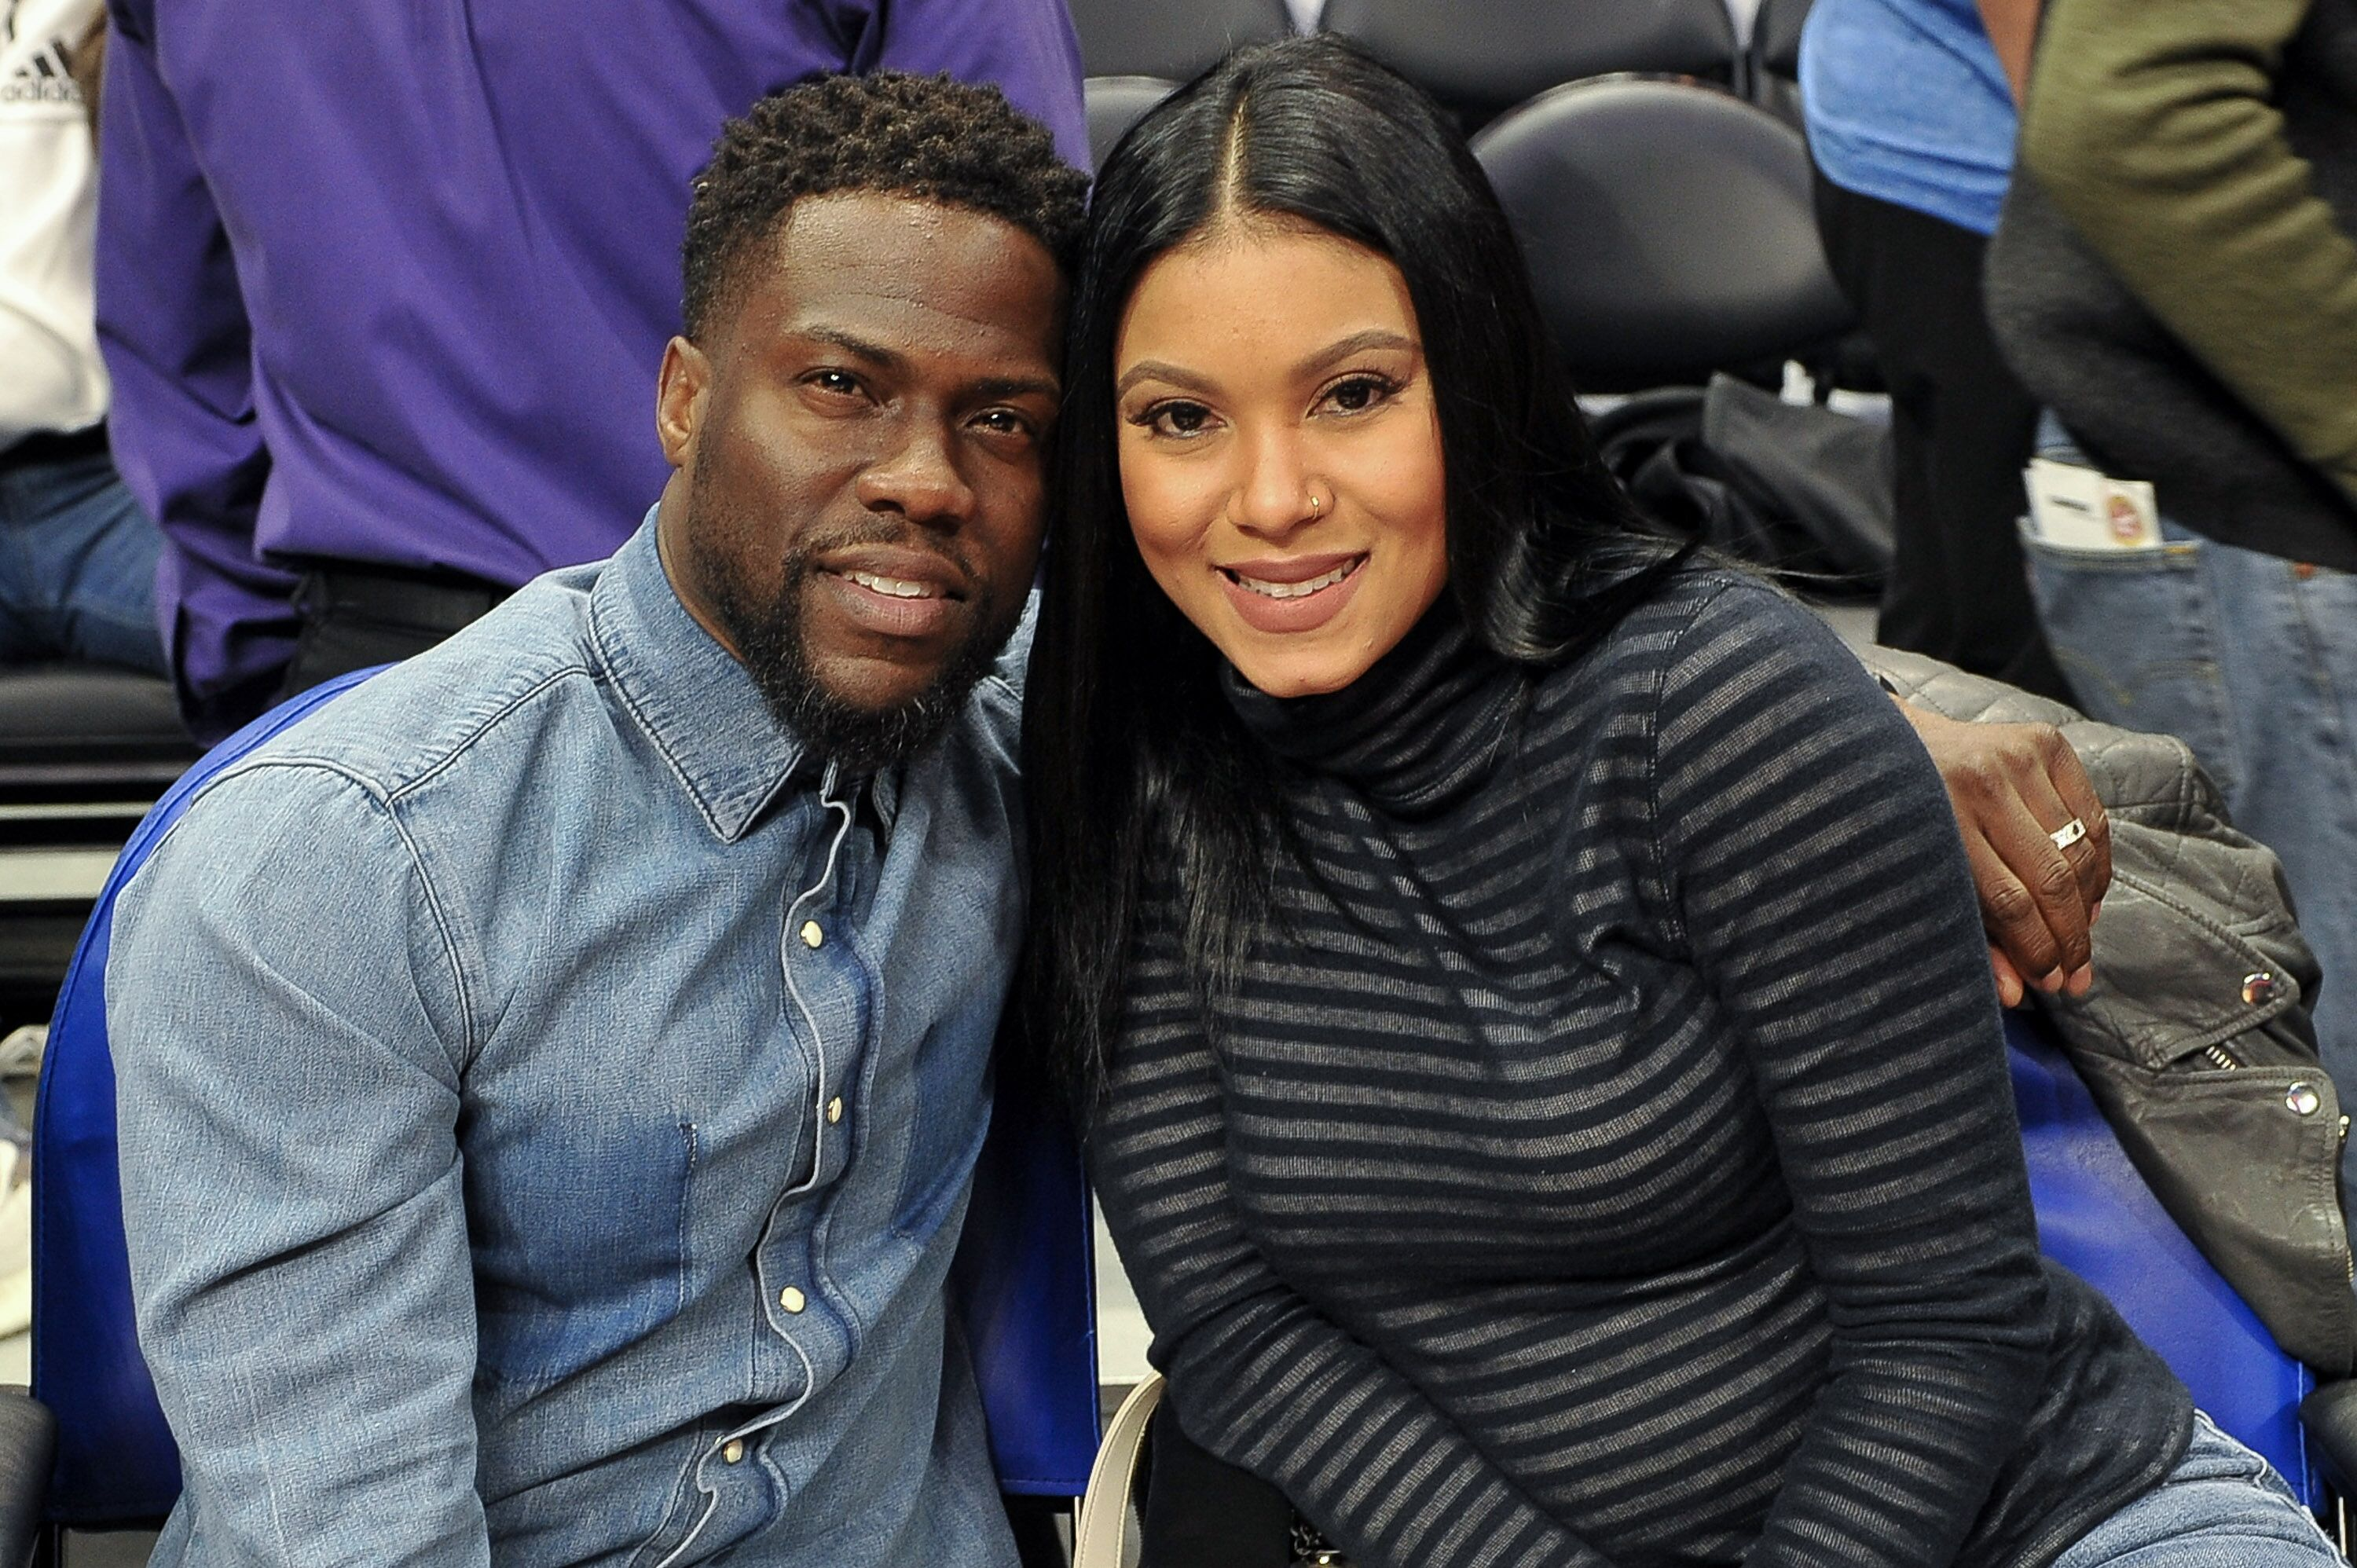 Kevin Hart and Eniko Parrish at a basketball game at Staples Center on January 22, 2018 in Los Angeles, California. | Source: Getty Images